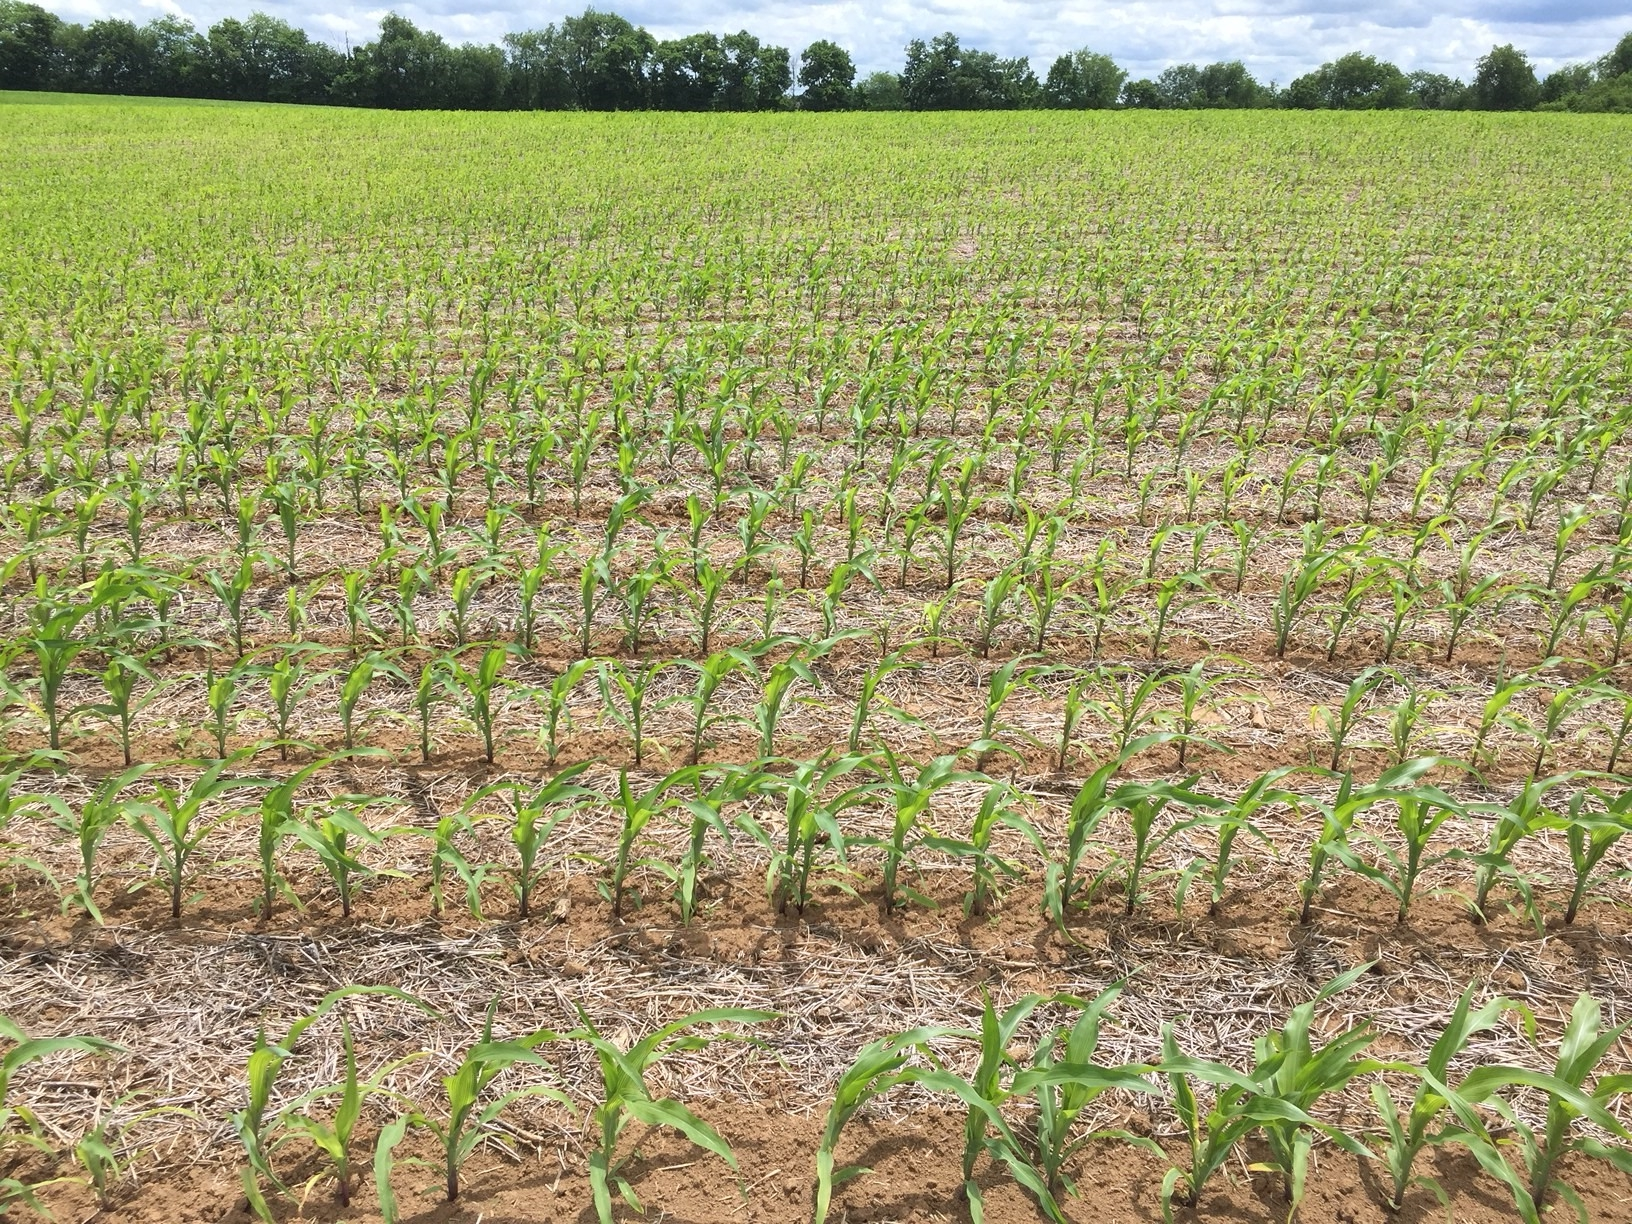 Corn seeded less than one-inch deep in is resulting in nutrient deficiencies in this field. With a little rain and sunshine, this field will grow out of problem in seven days.